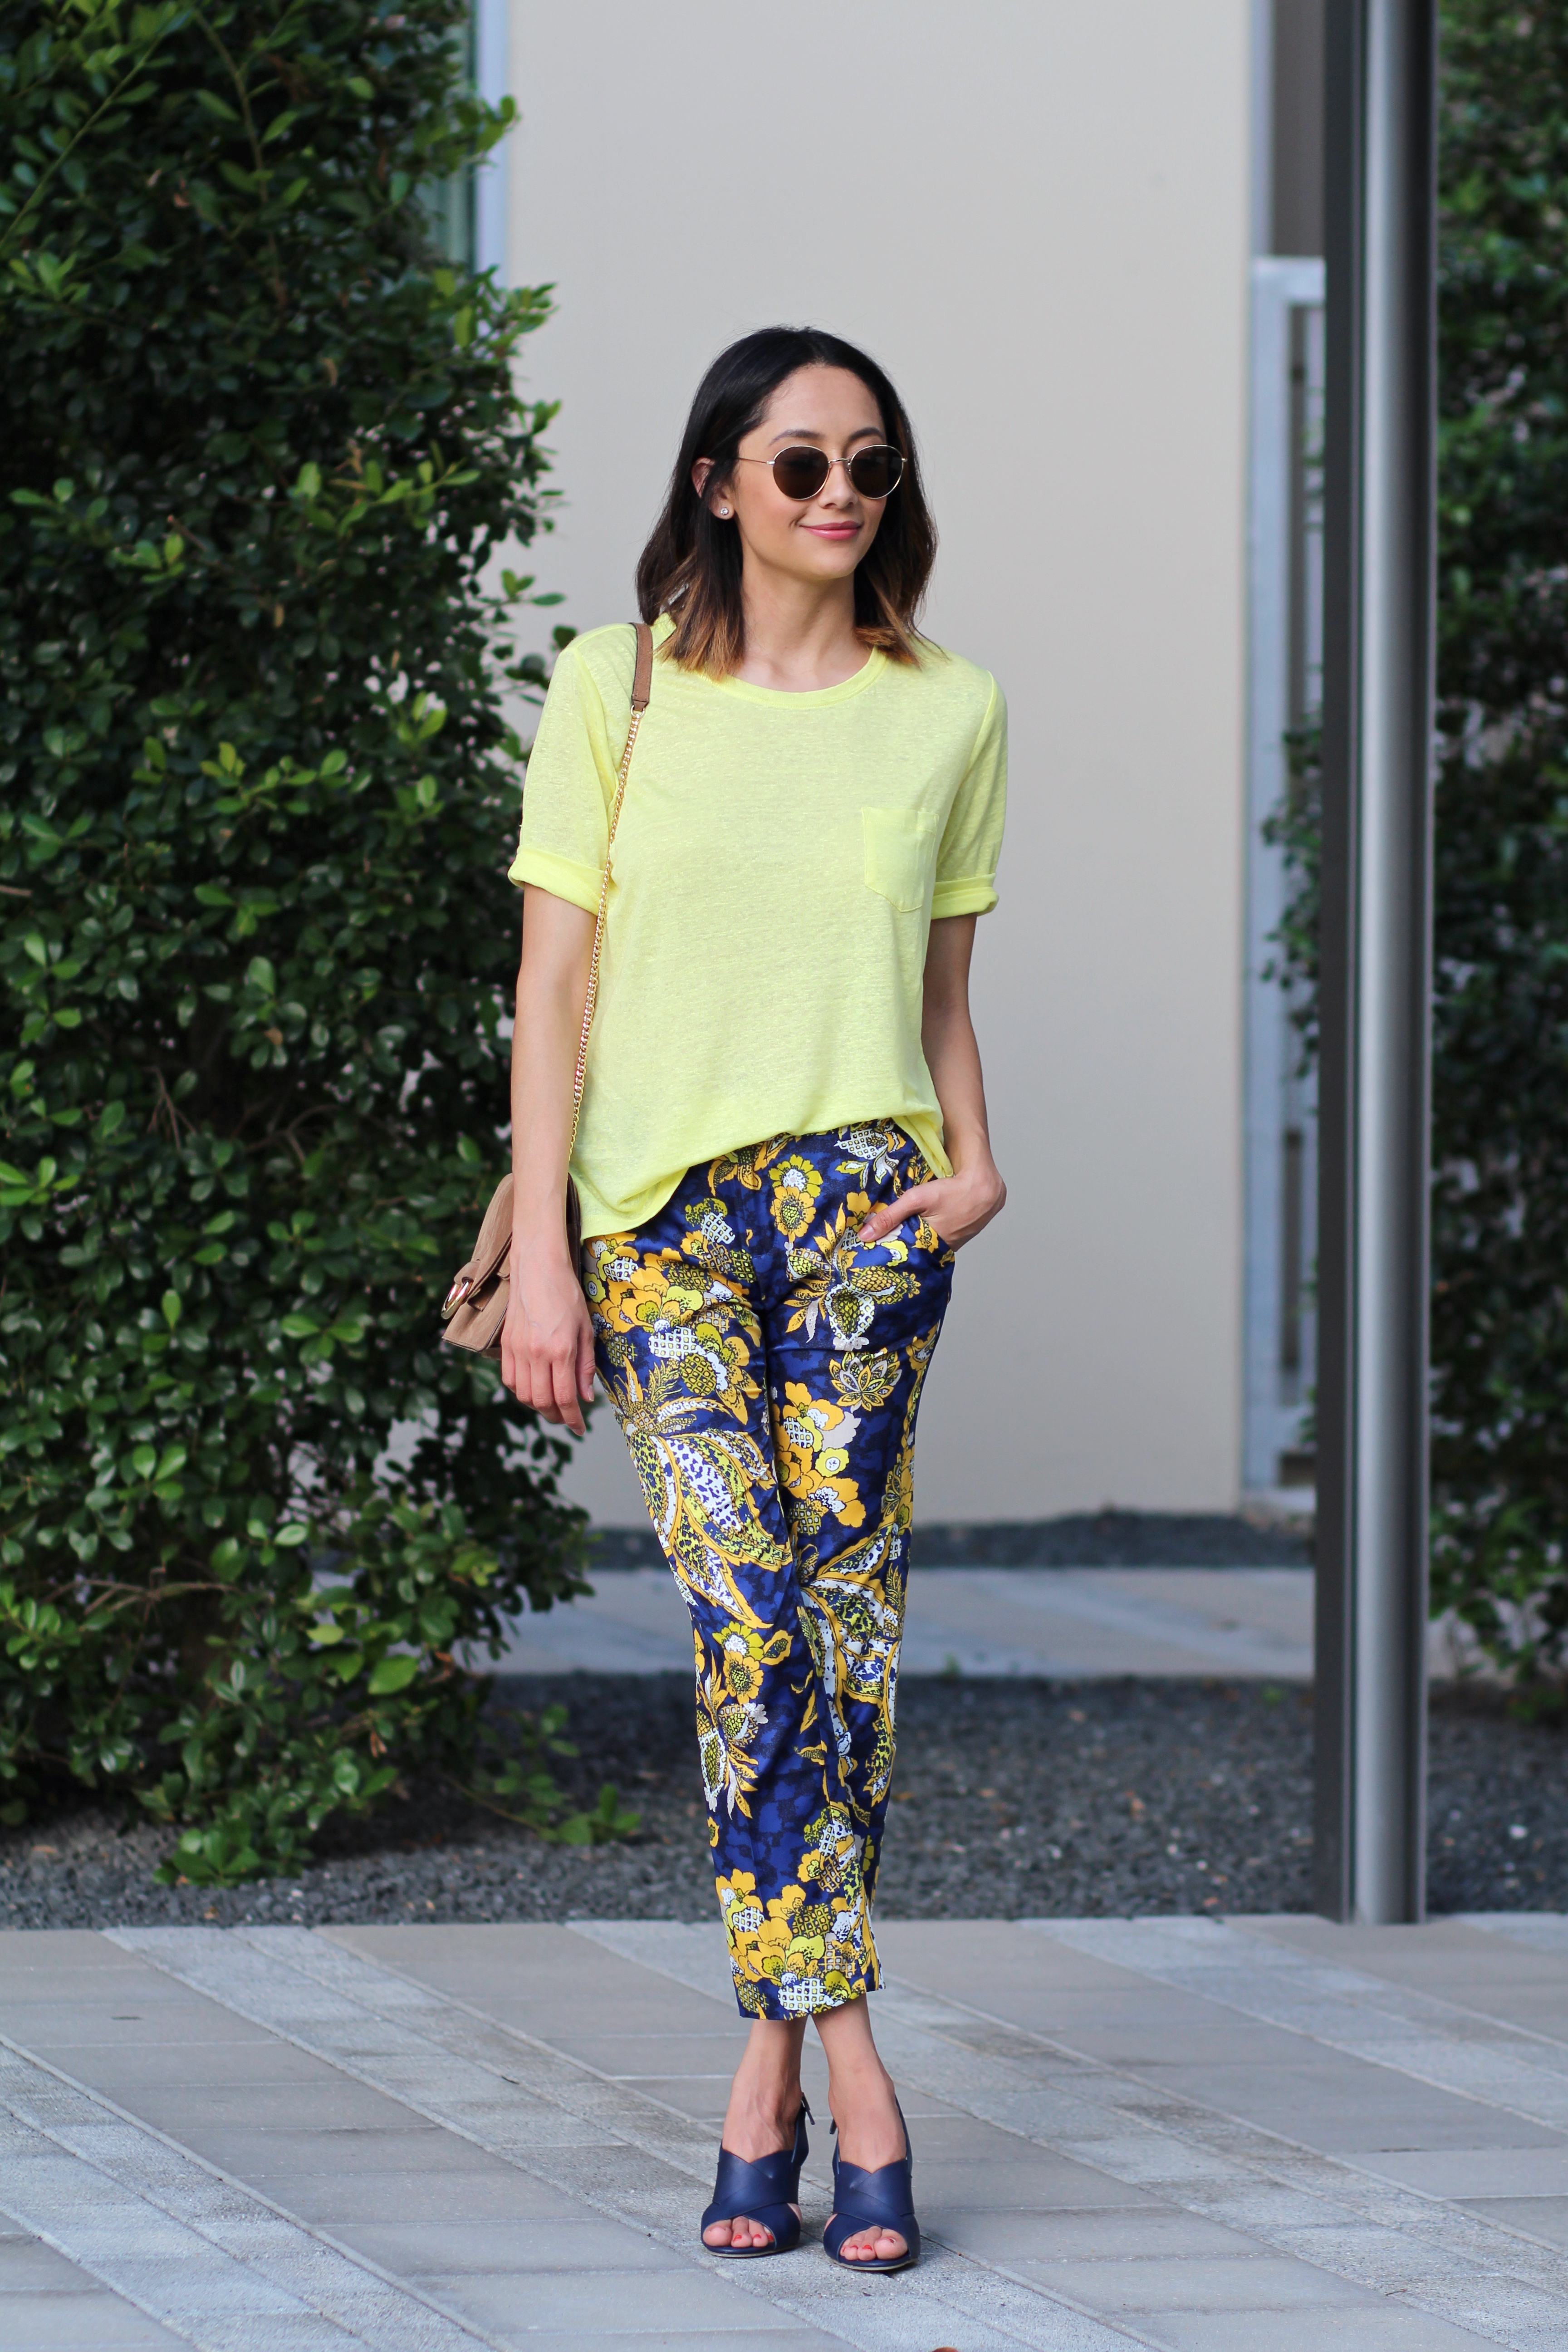 Fashion blogger Lilly Beltran of Daily Craving wearing yellow and blue floral printed pants